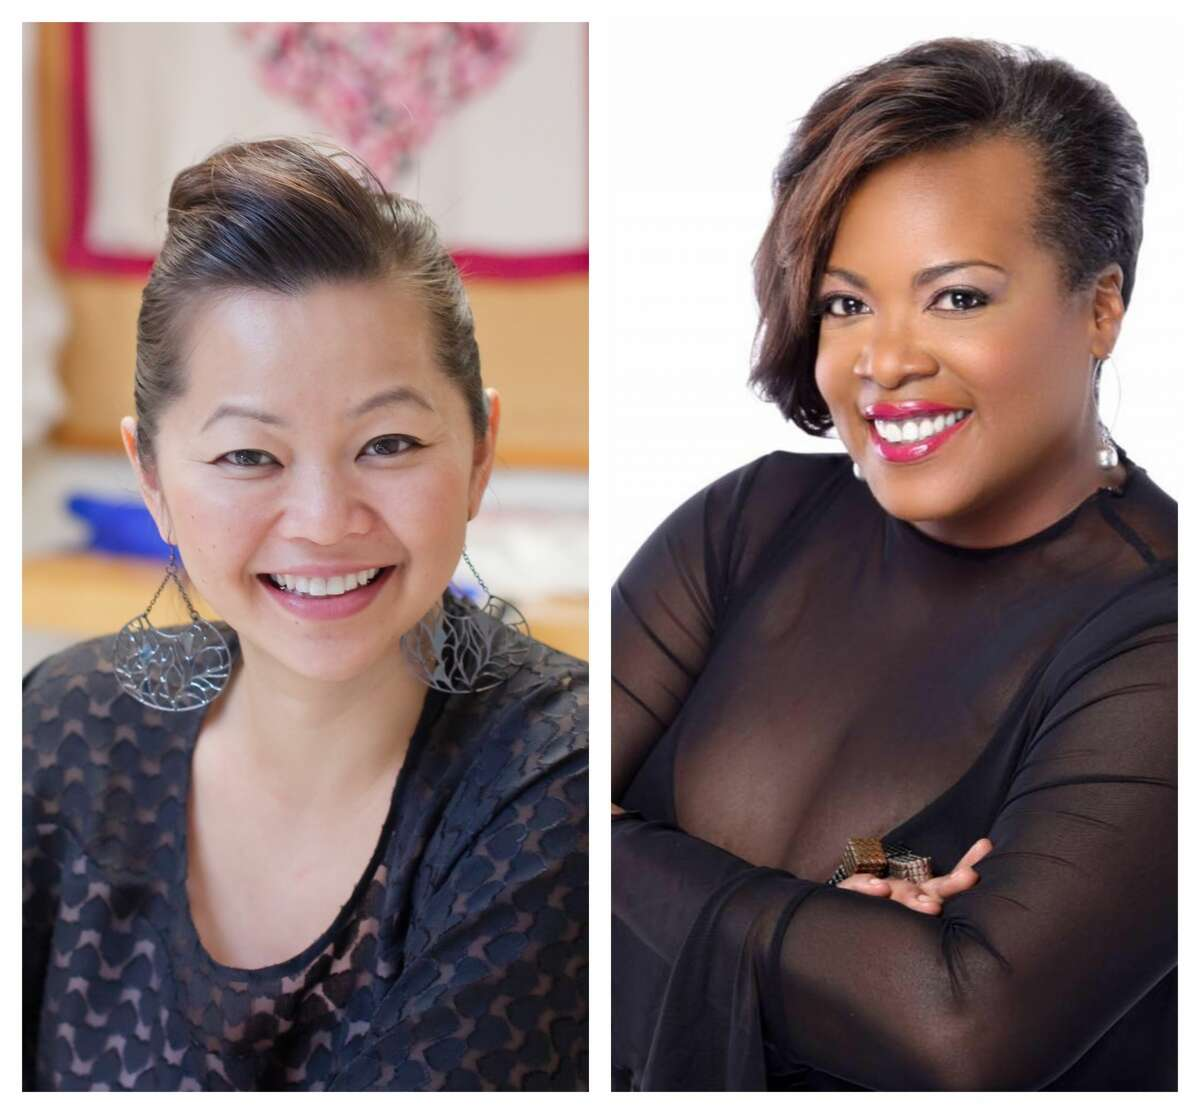 FASHION: ChloeDaois owner ofChloeDao Boutique in Rice Village and a Project Runway Winner. Jackie Adams has owned Melodrama boutique onAlmedafor nearly 20 years.